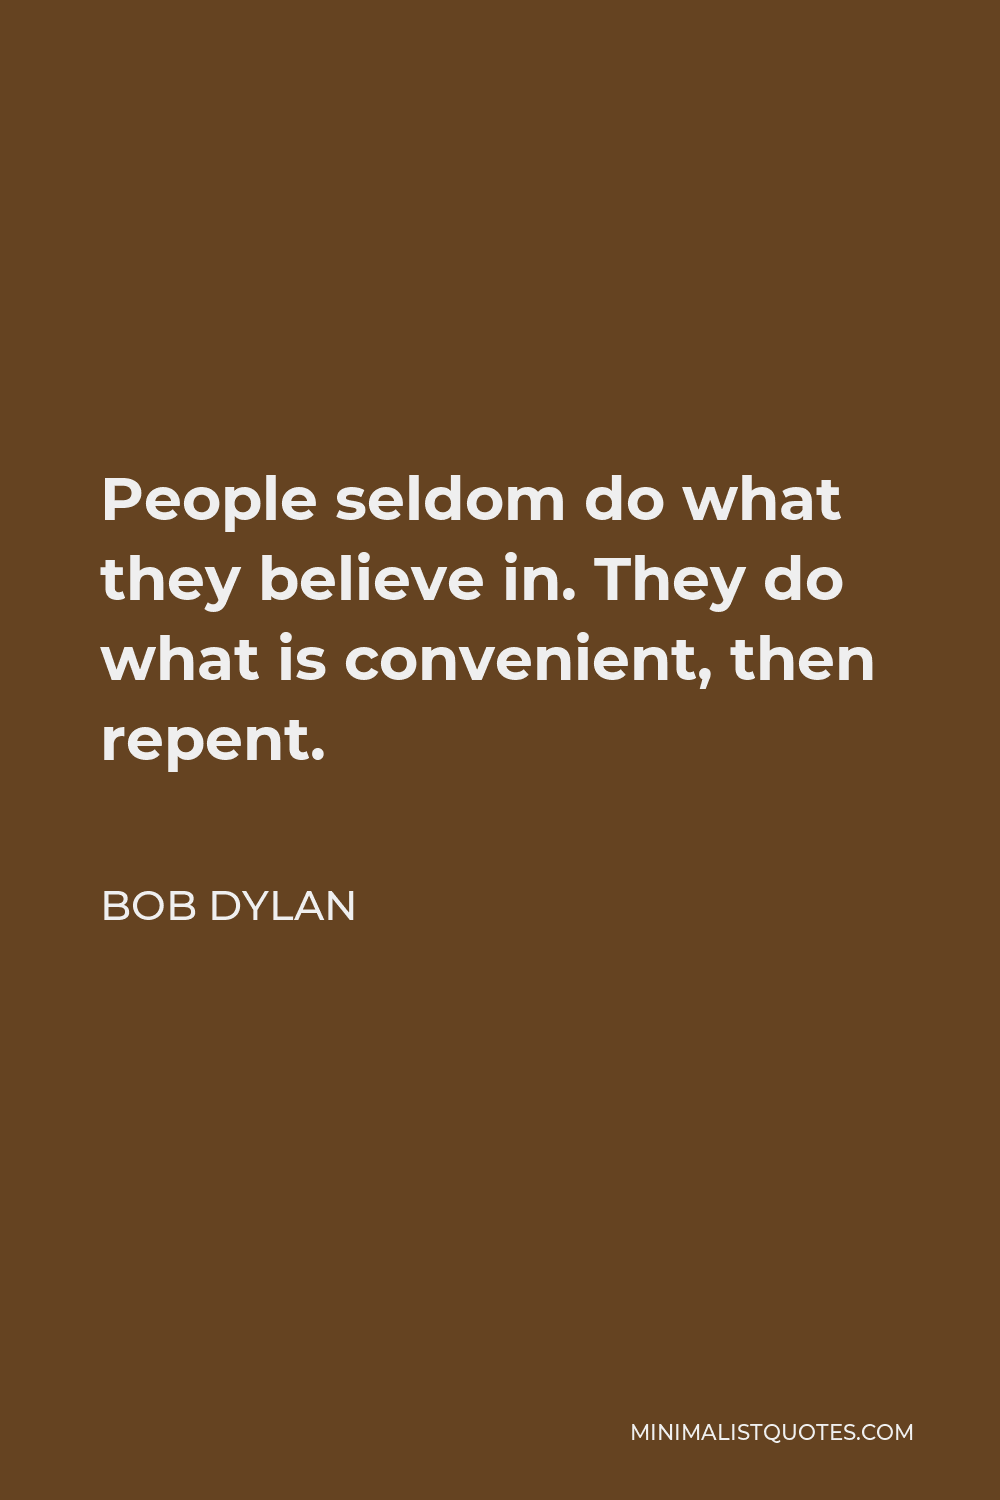 Bob Dylan Quote - People seldom do what they believe in. They do what is convenient, then repent.